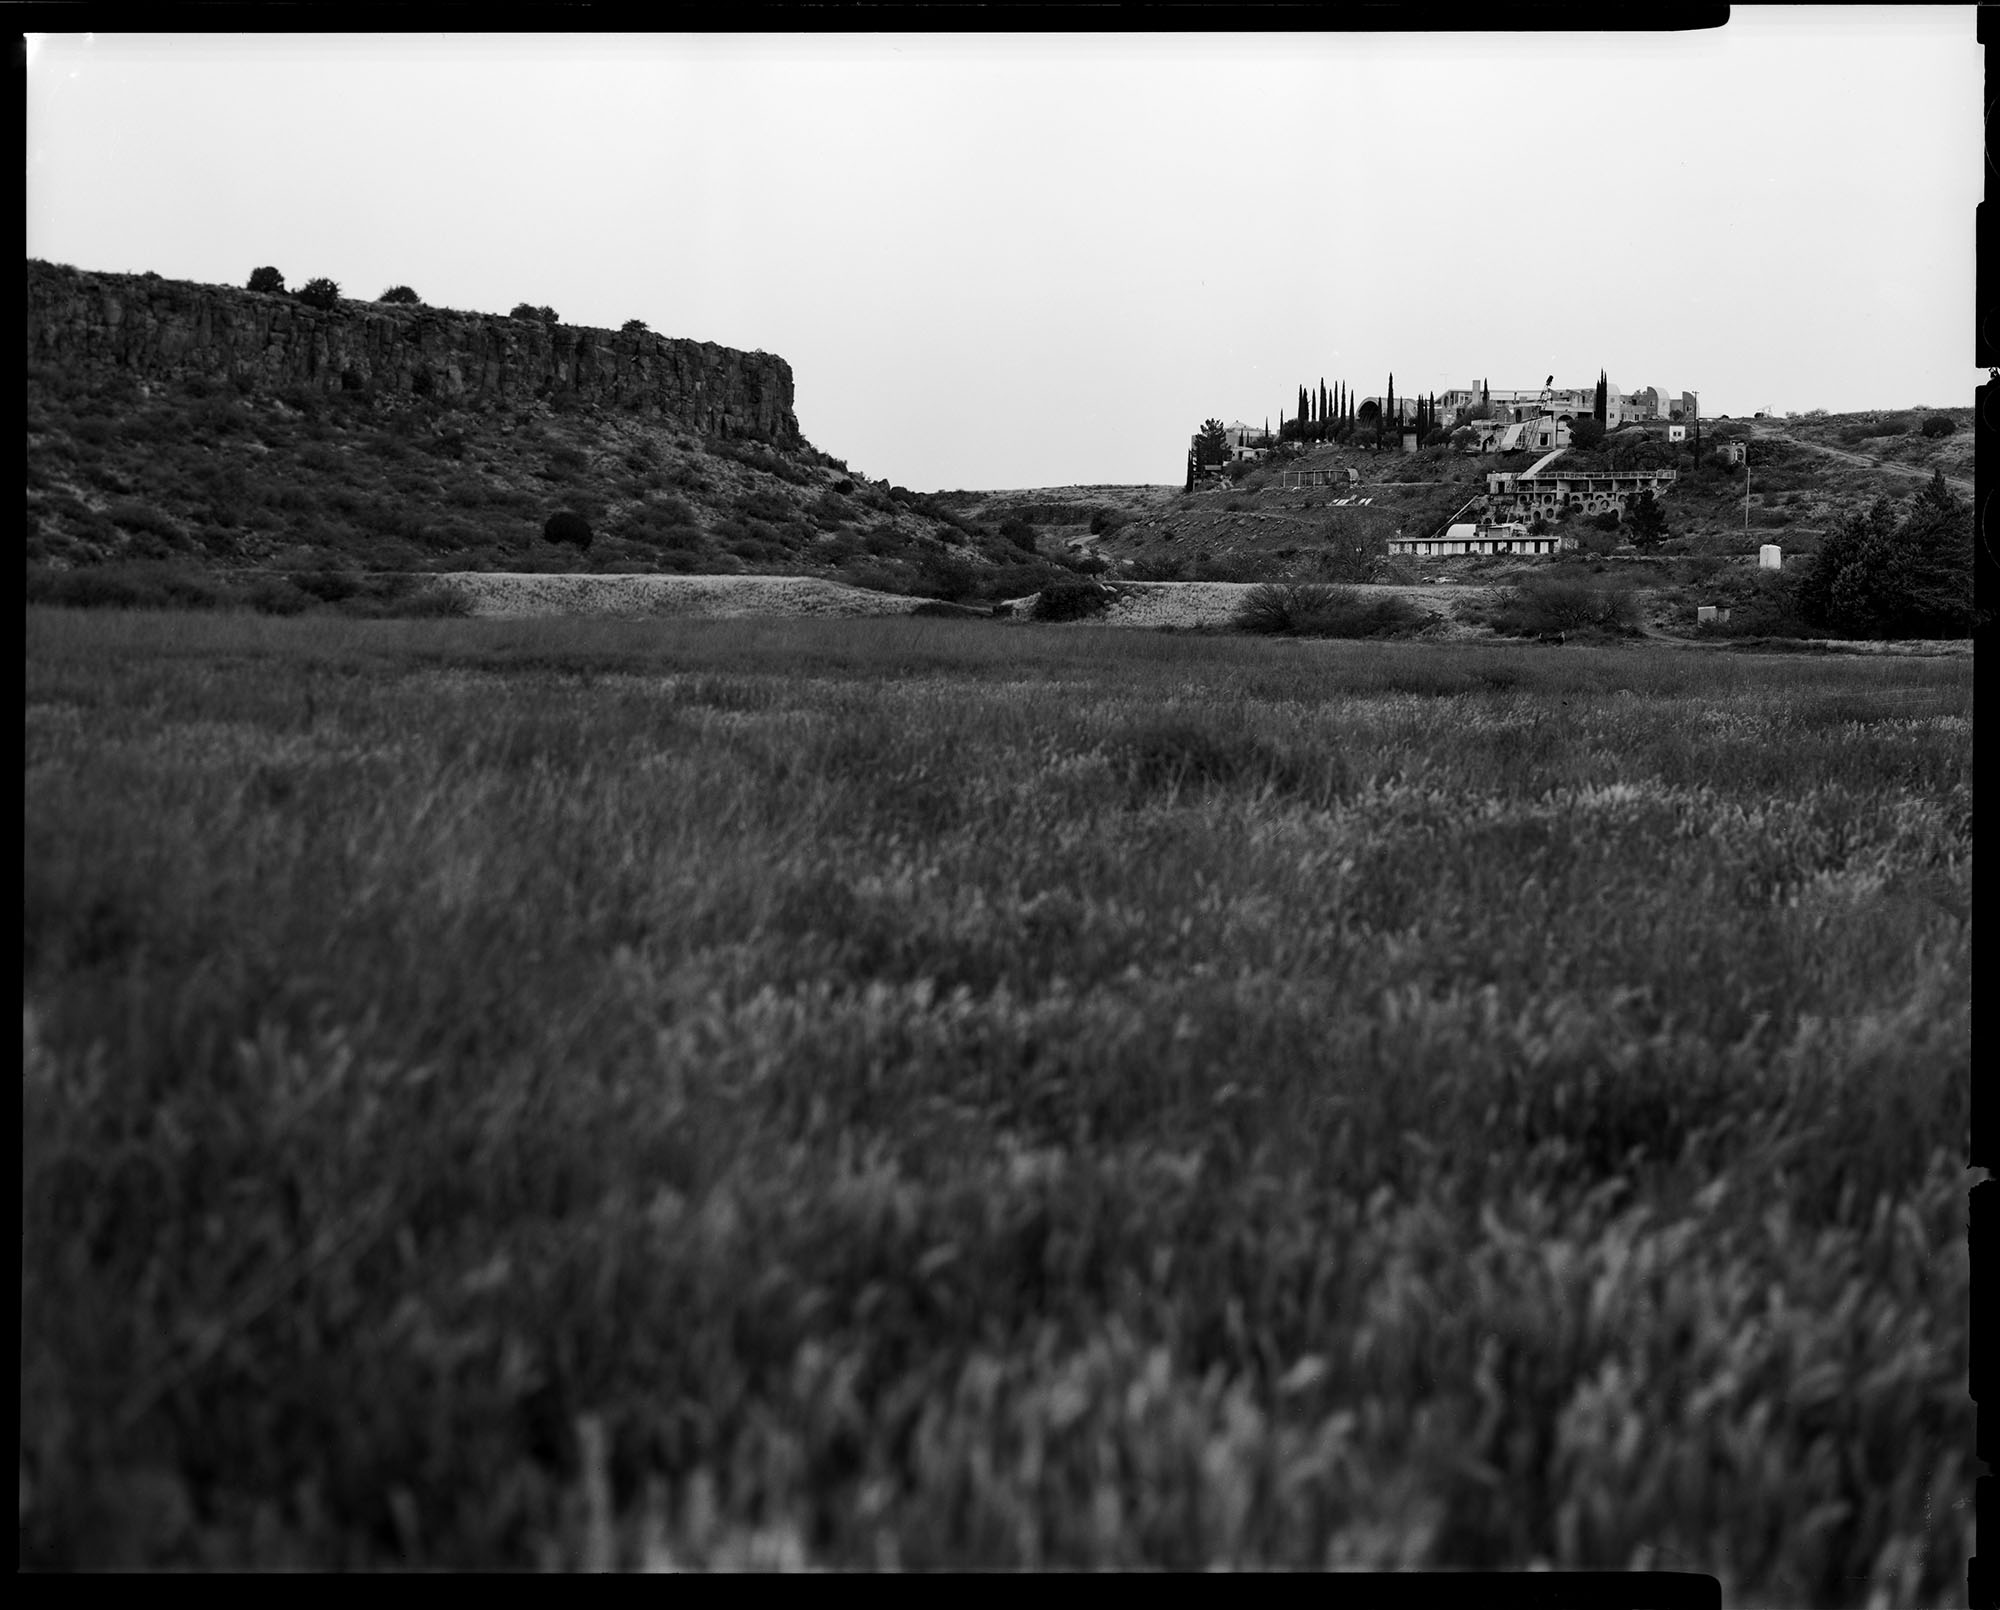 Arcosanti, seen from the valley down below. This photograph was made on film with a large format Sinar F1 4x5 camera.